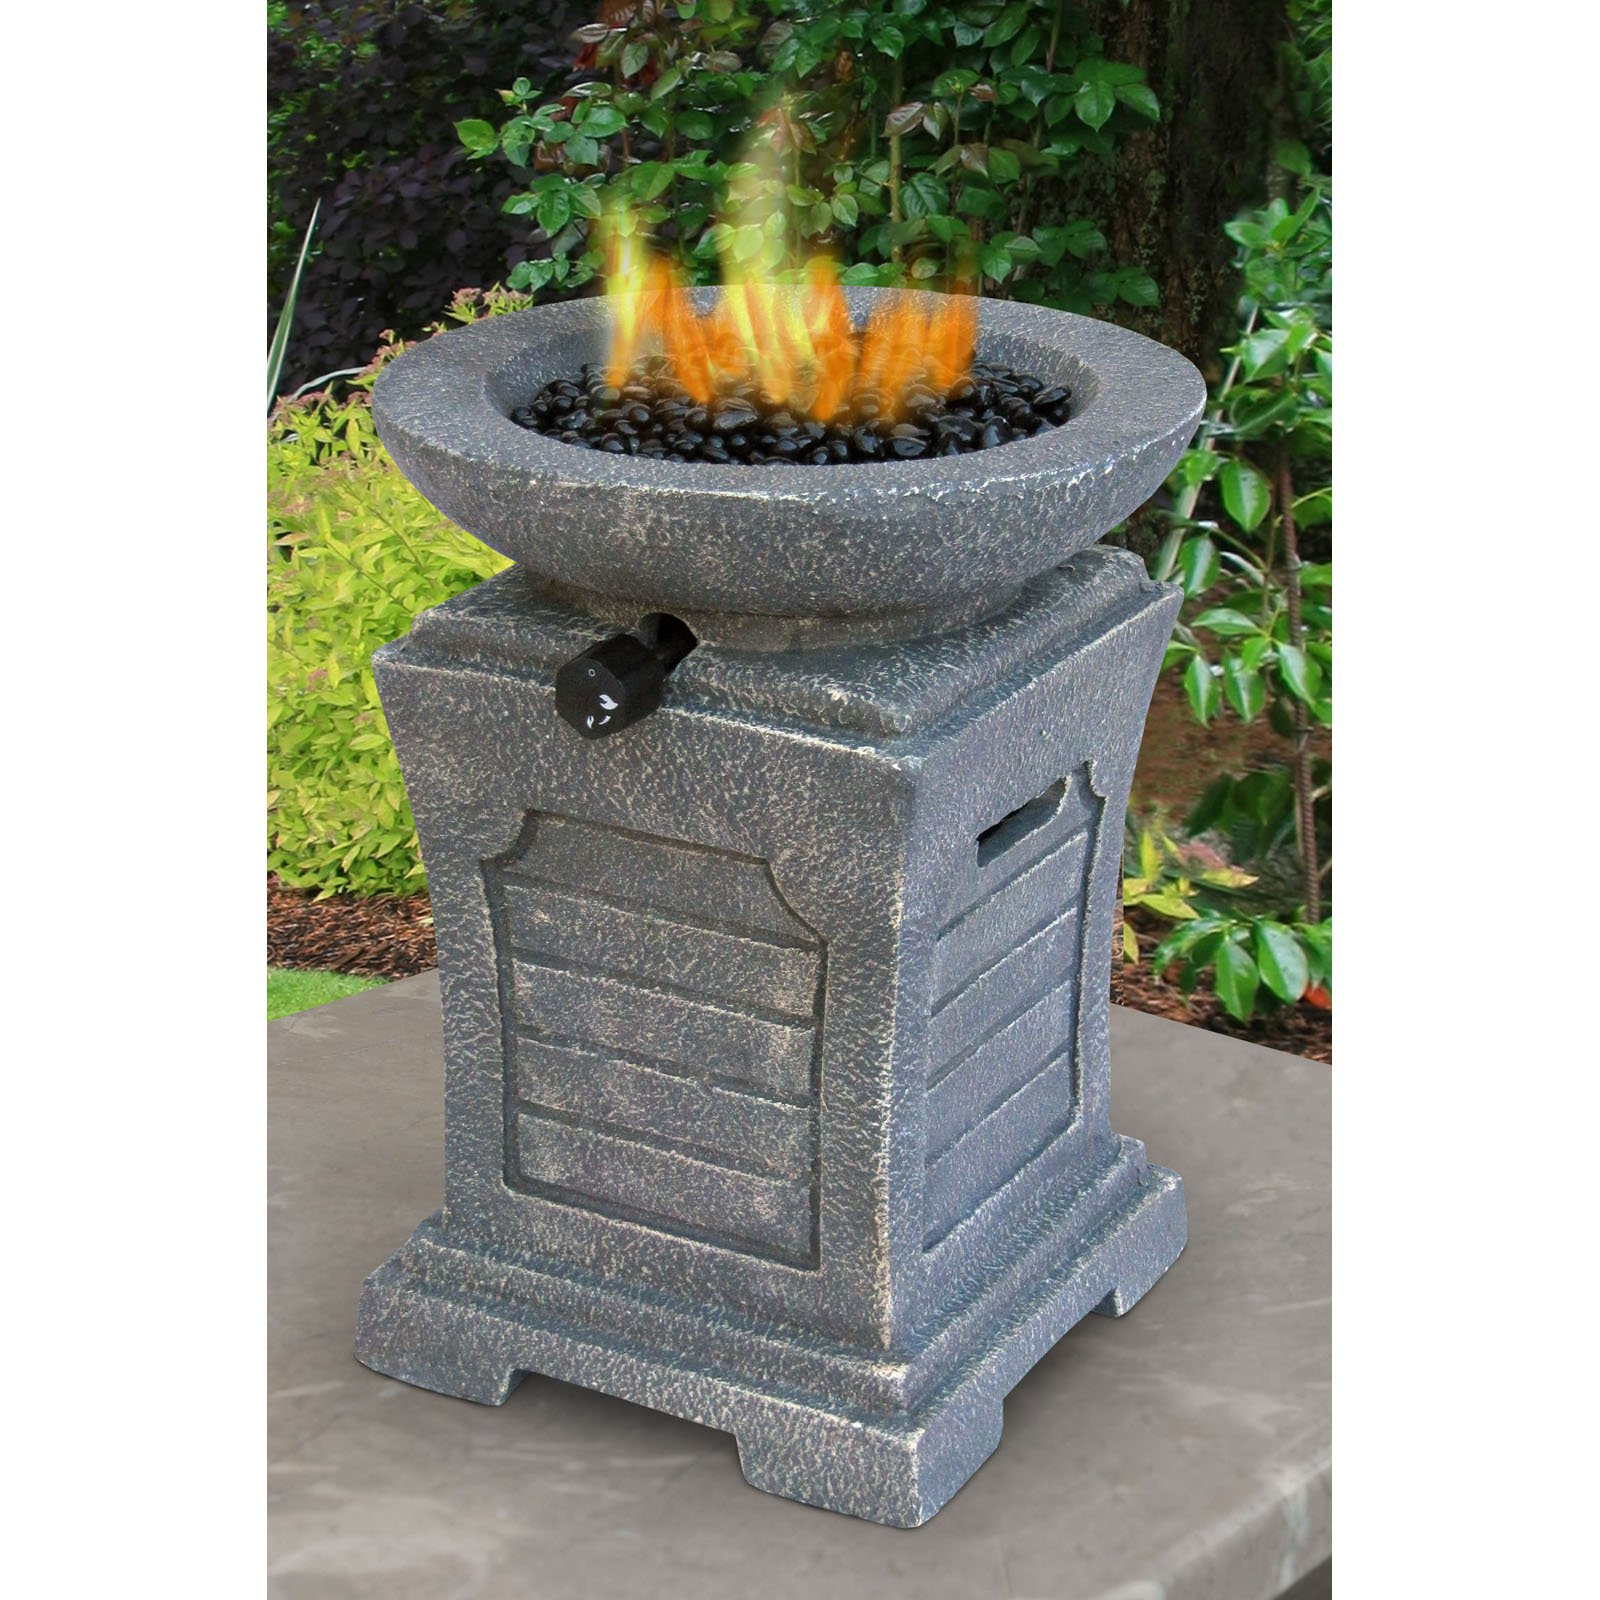 Best ideas about Table Top Fire Pit . Save or Pin Landmann USA Seneca Gas 15 in Table Top Fire Pit Fire Now.